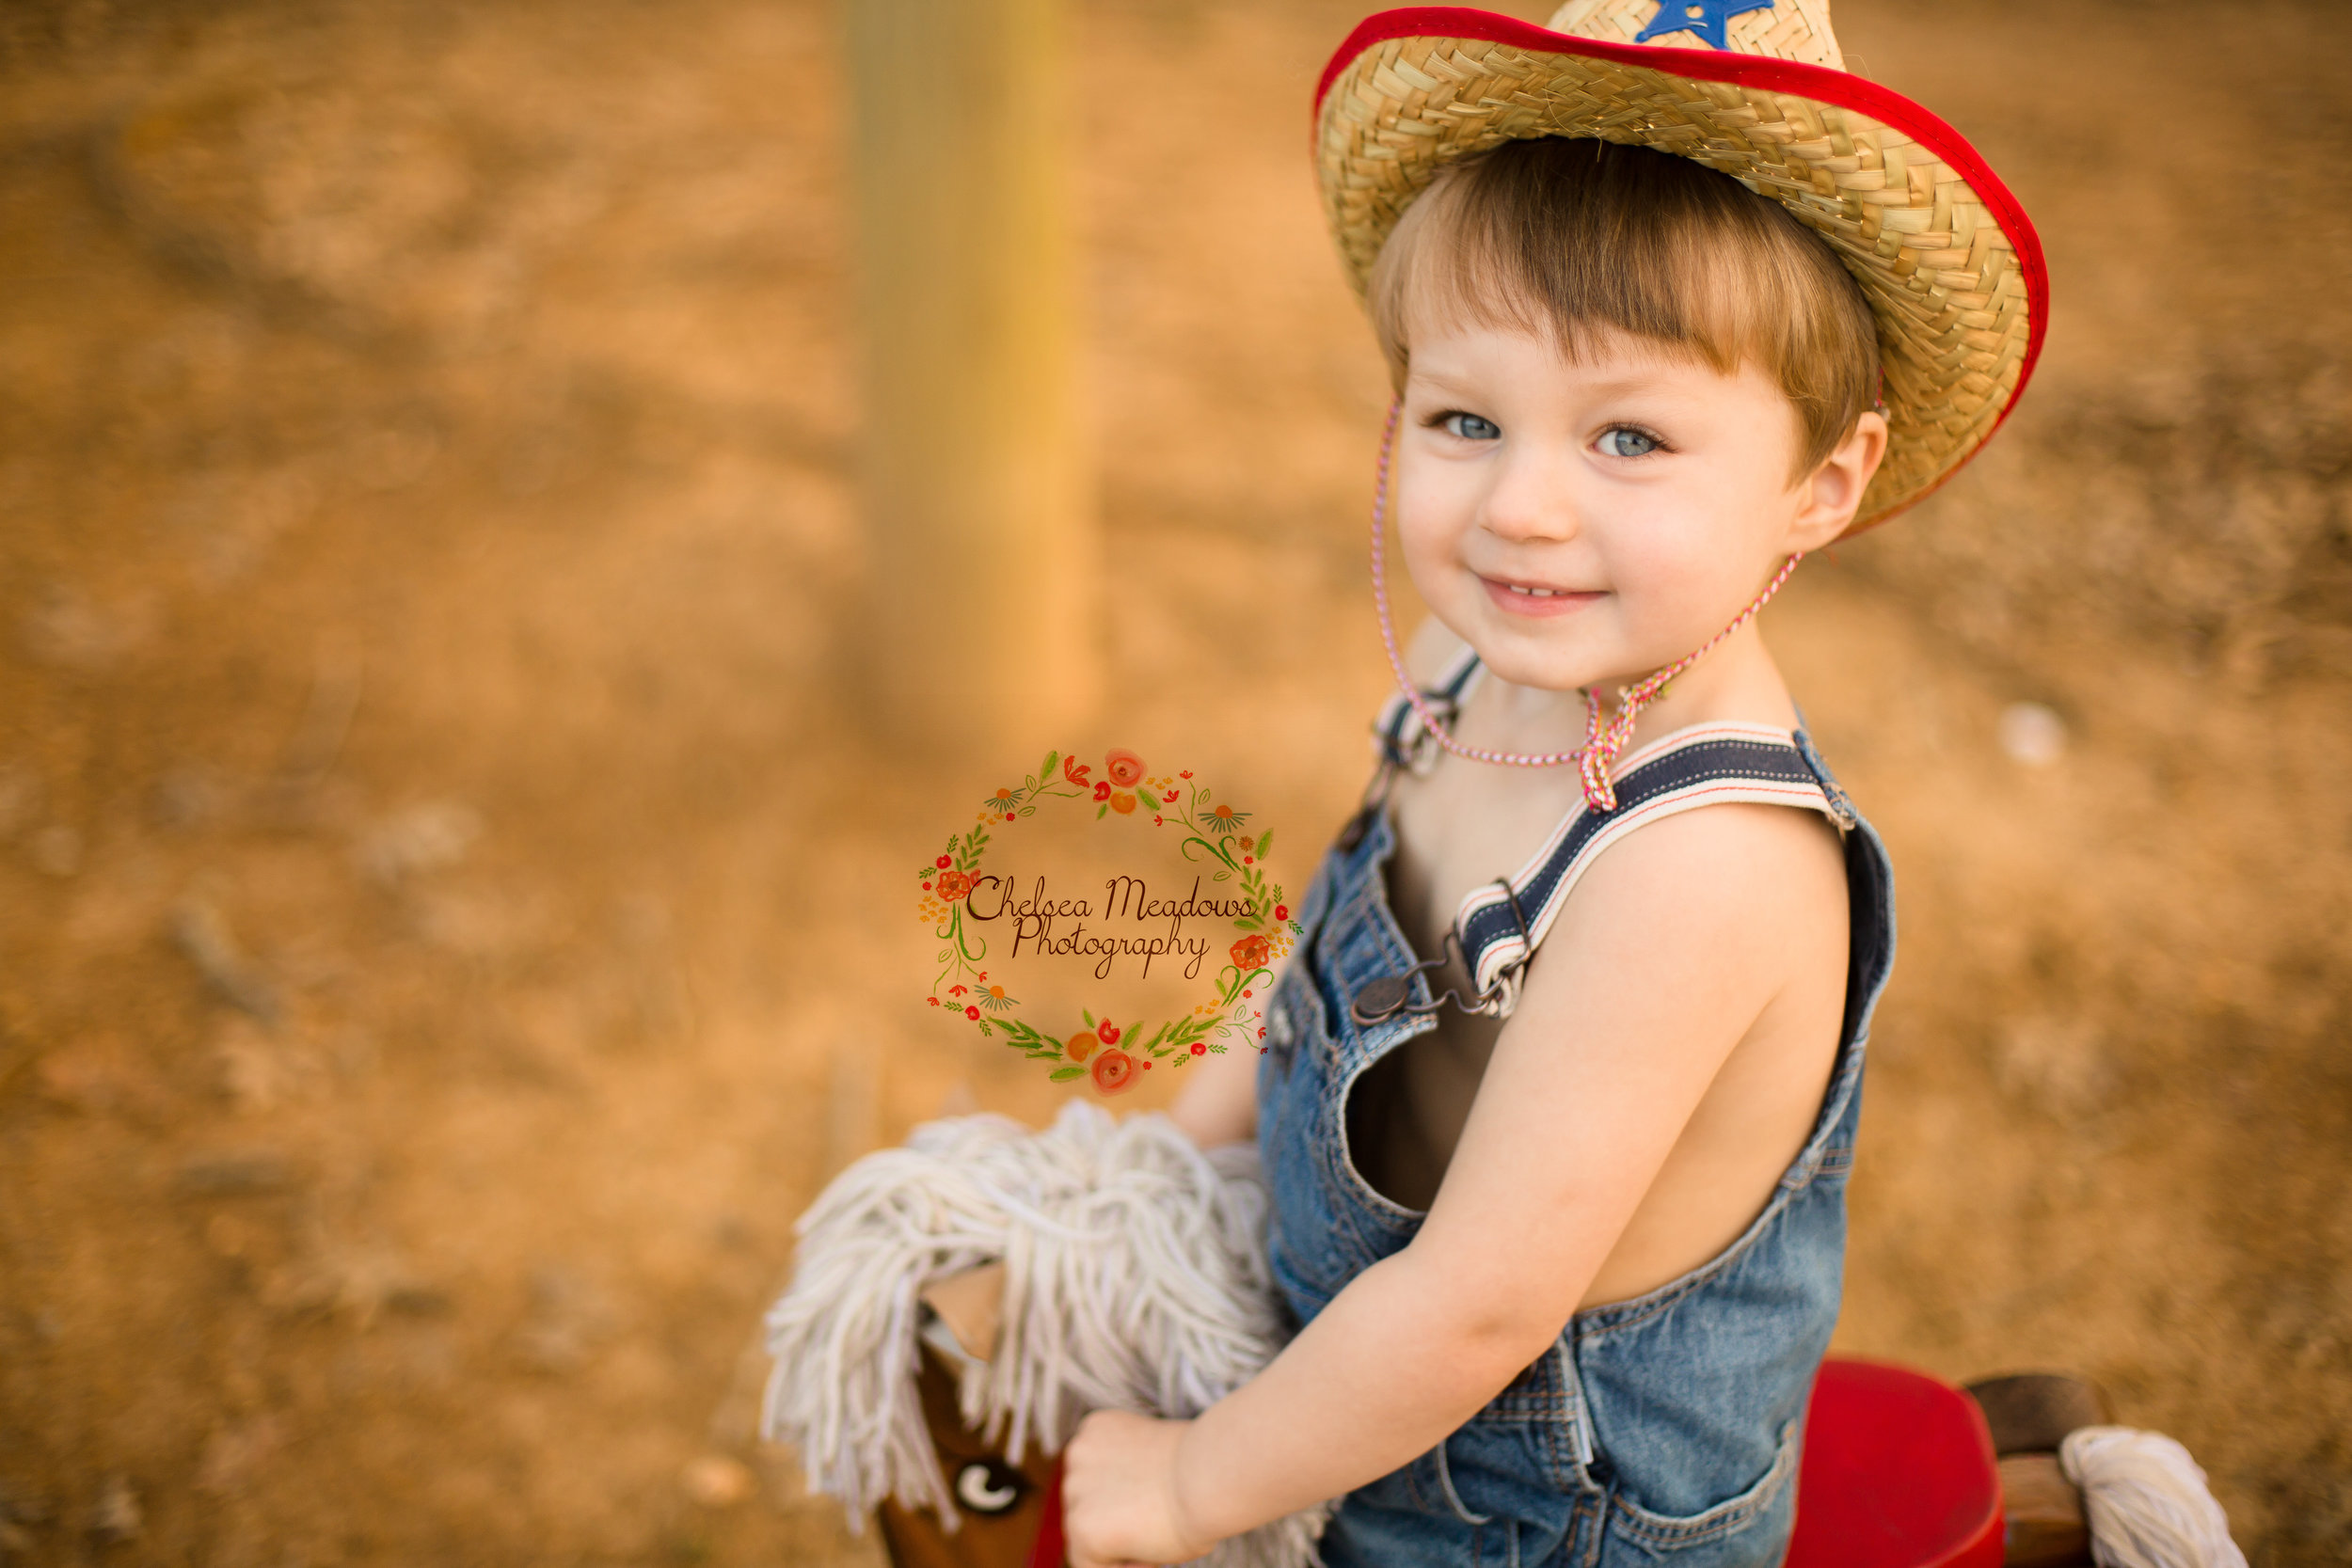 Grayson Cowboy Photos - Nashville family Photographer - Chelsea Meadows Photography (1)_edited-2.jpg